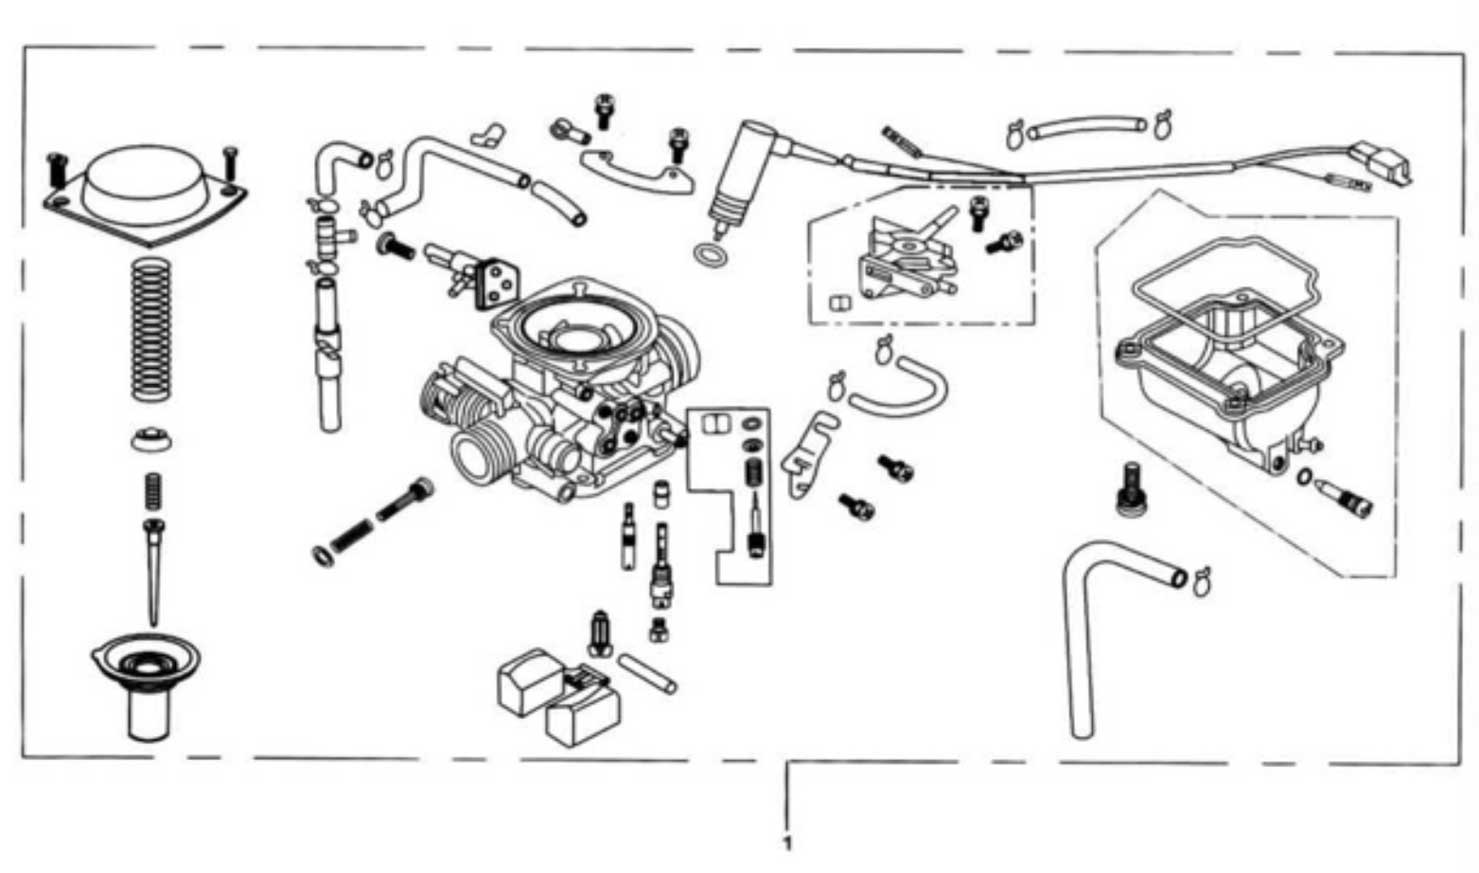 Hammerhead Gt 150 Wiring Diagram : 32 Wiring Diagram